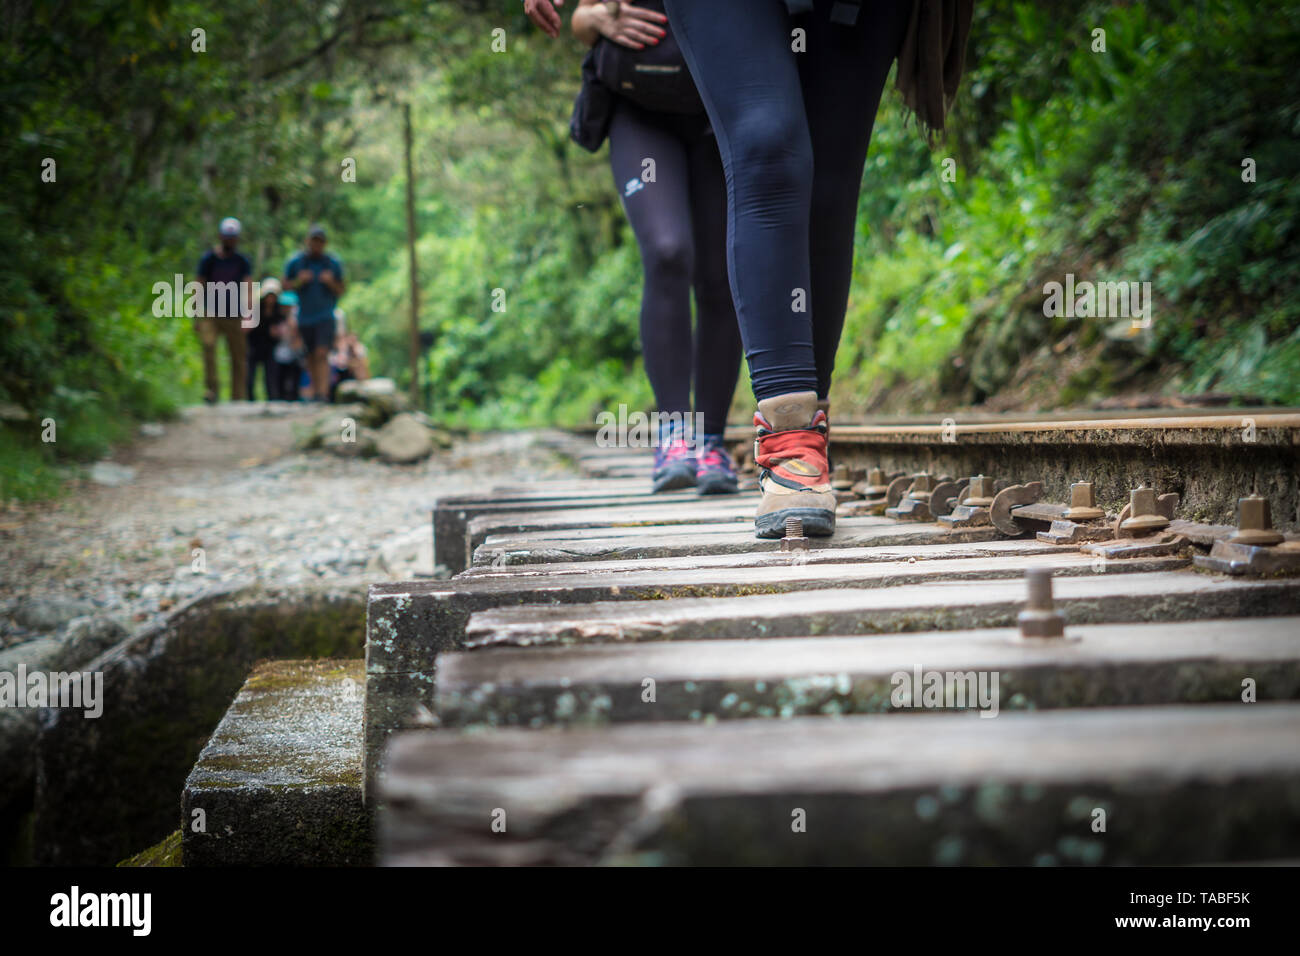 Hikers walking towards Machu Picchu from the hydroelectric power station, Peru - Stock Image